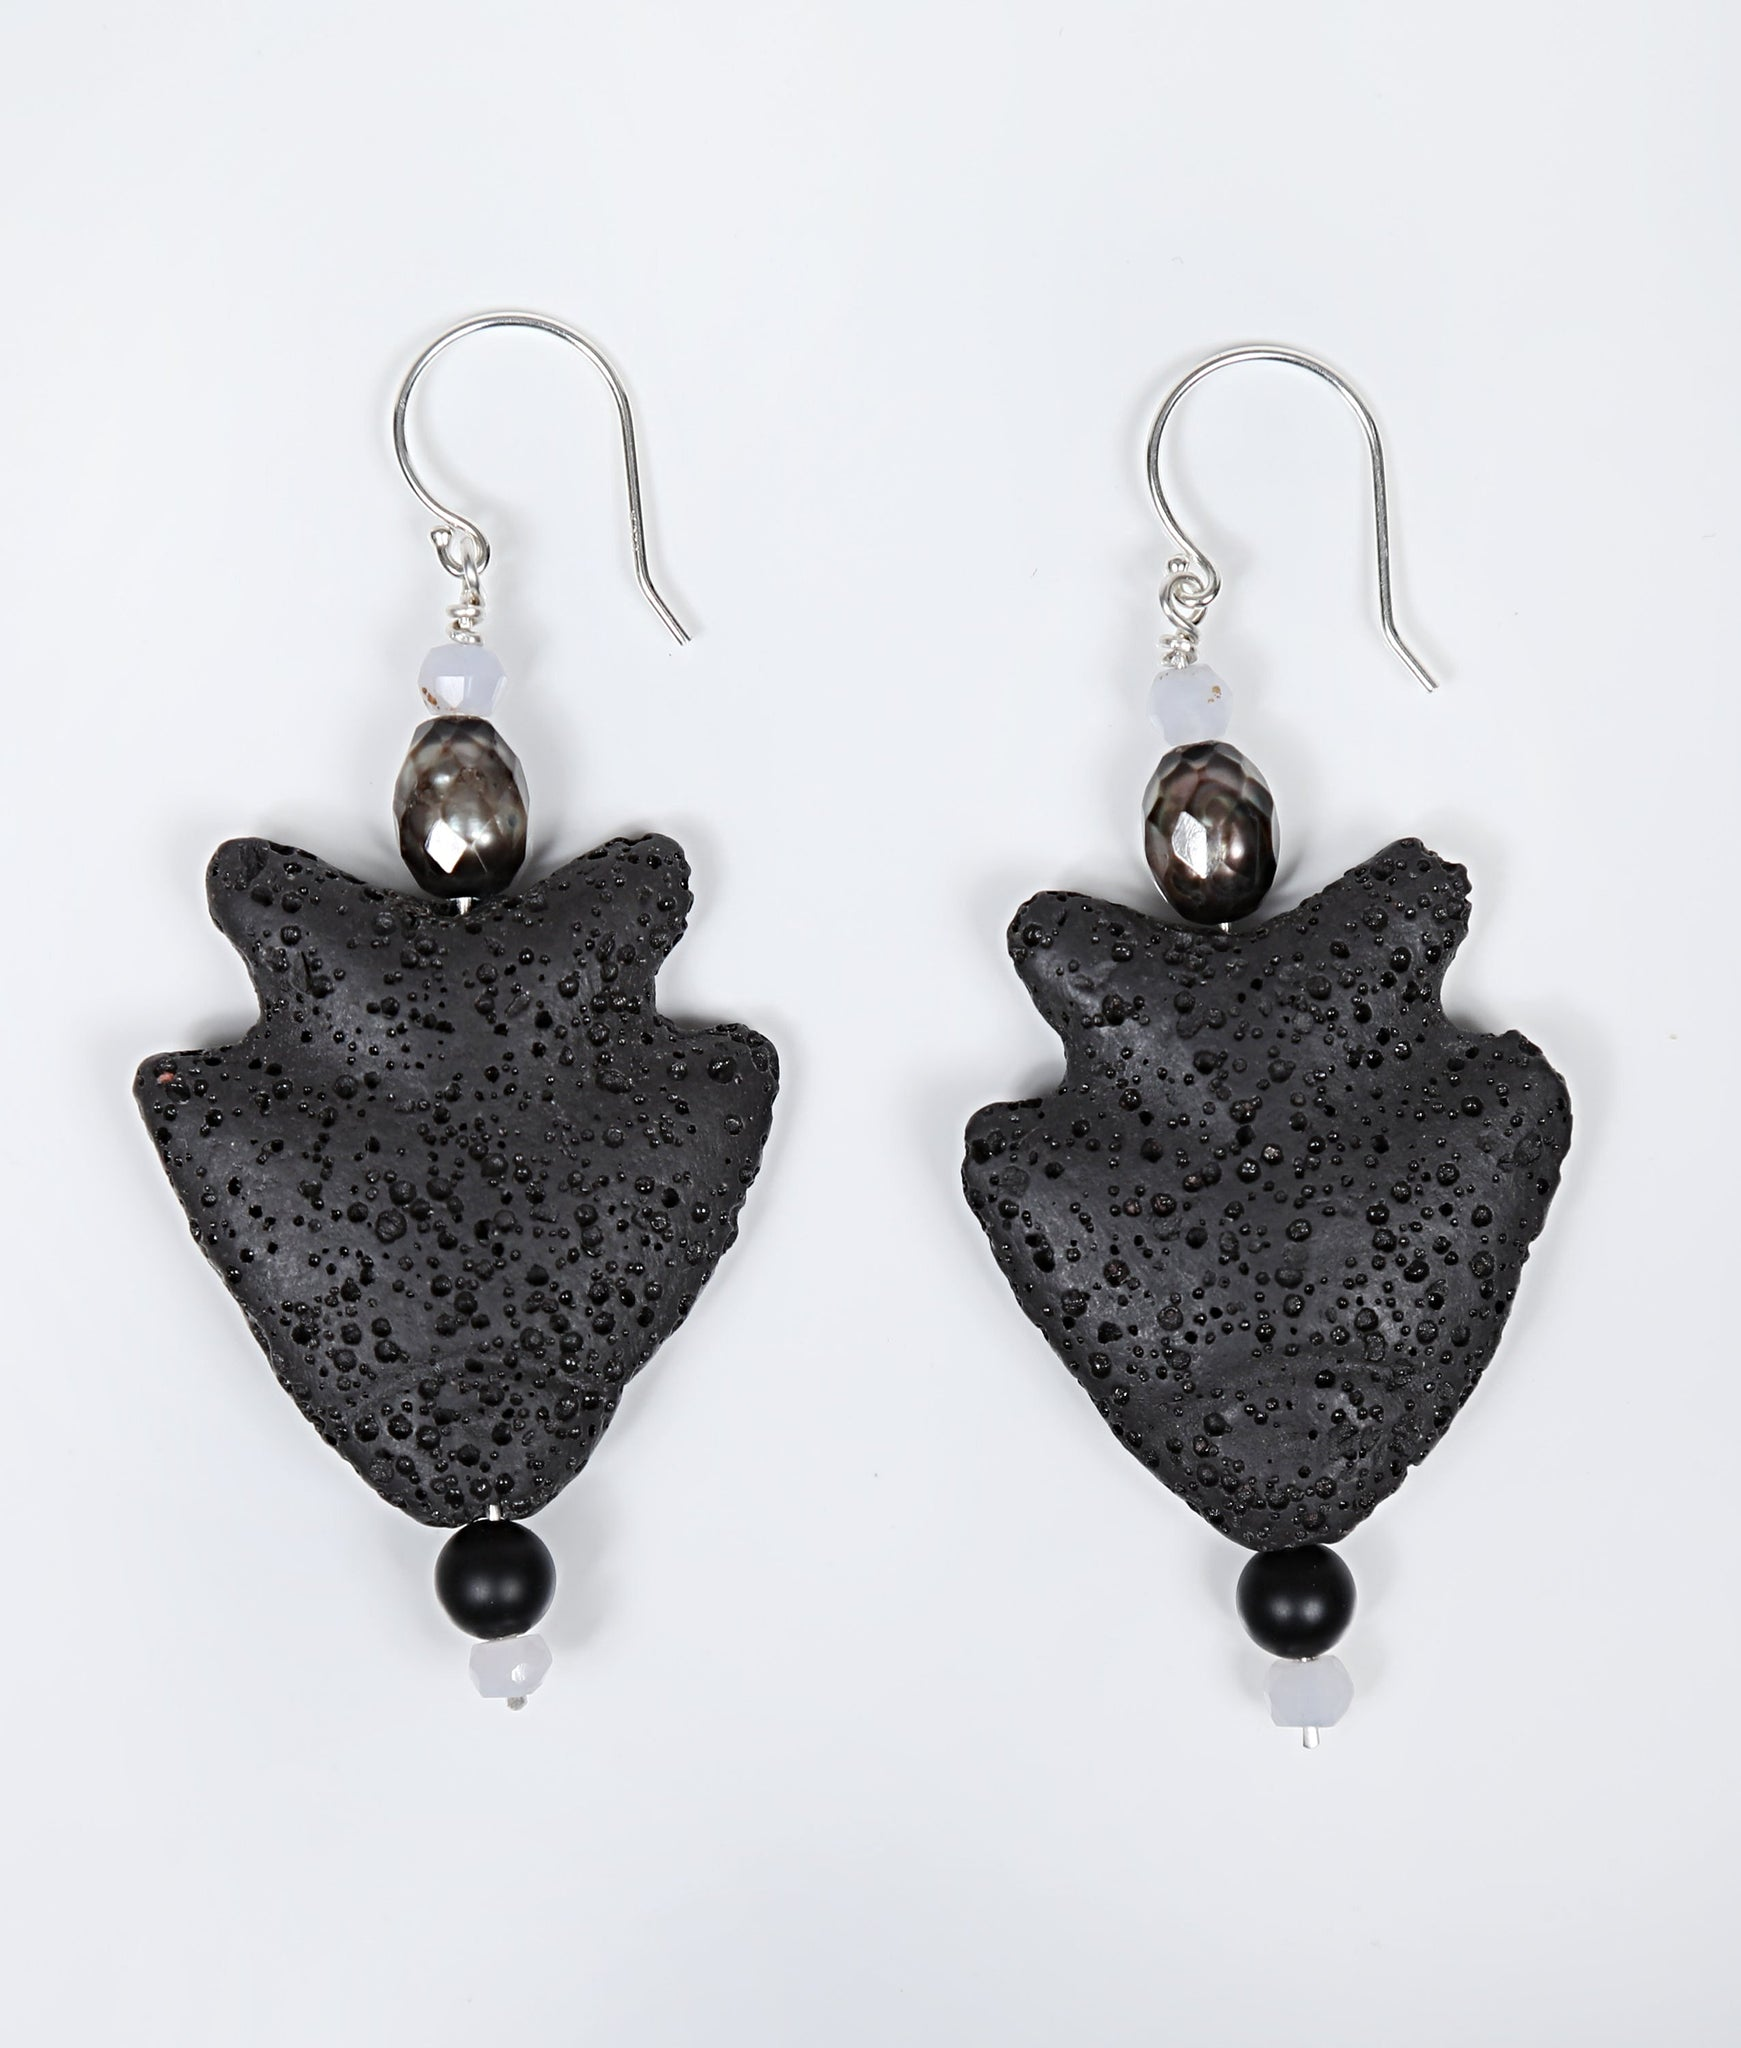 White Orchid Studios | Made in the USA | Handcrafted couture jewelry inspired by nature. |  Jumping fish earrings of carved black lava, light blue chalcedony, platinum freshwater pearls, and onyx on sterling earwires. $91